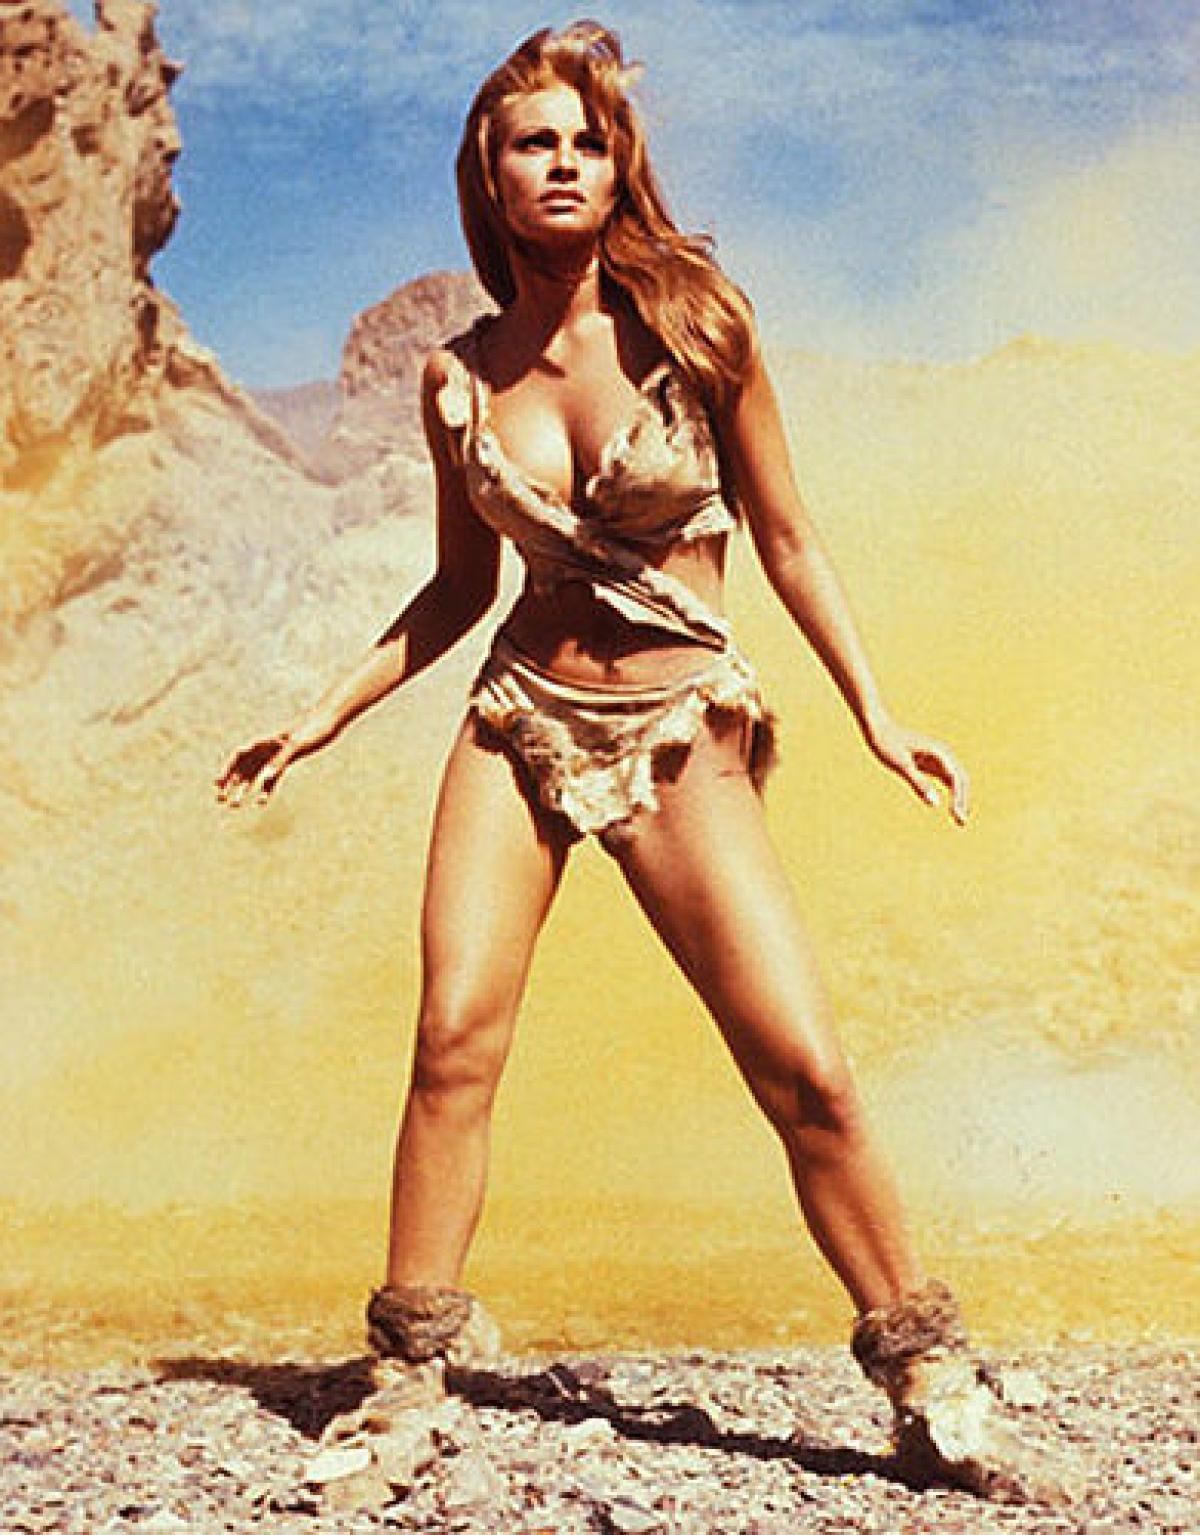 Remarkable, raquel welch movies